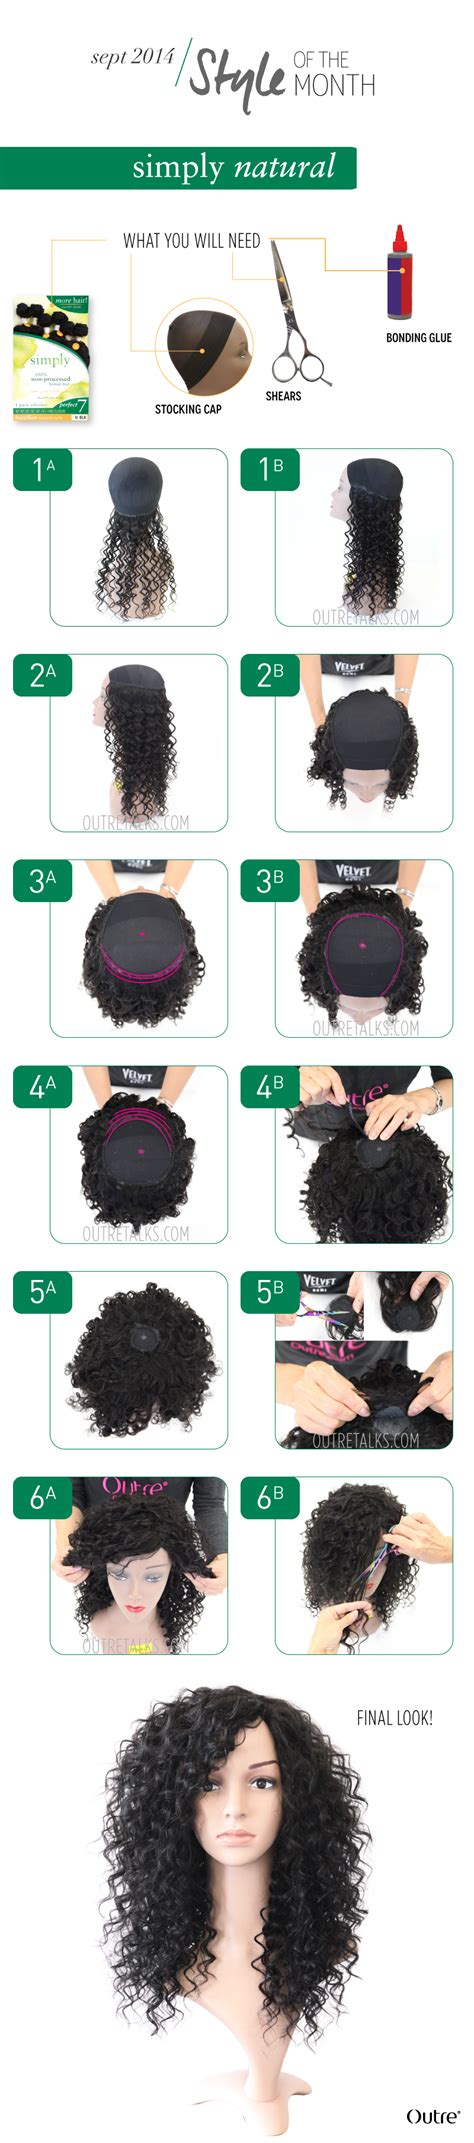 step by step tutorial on seeing curly weave how to make a curly stocking cap wig outretalks